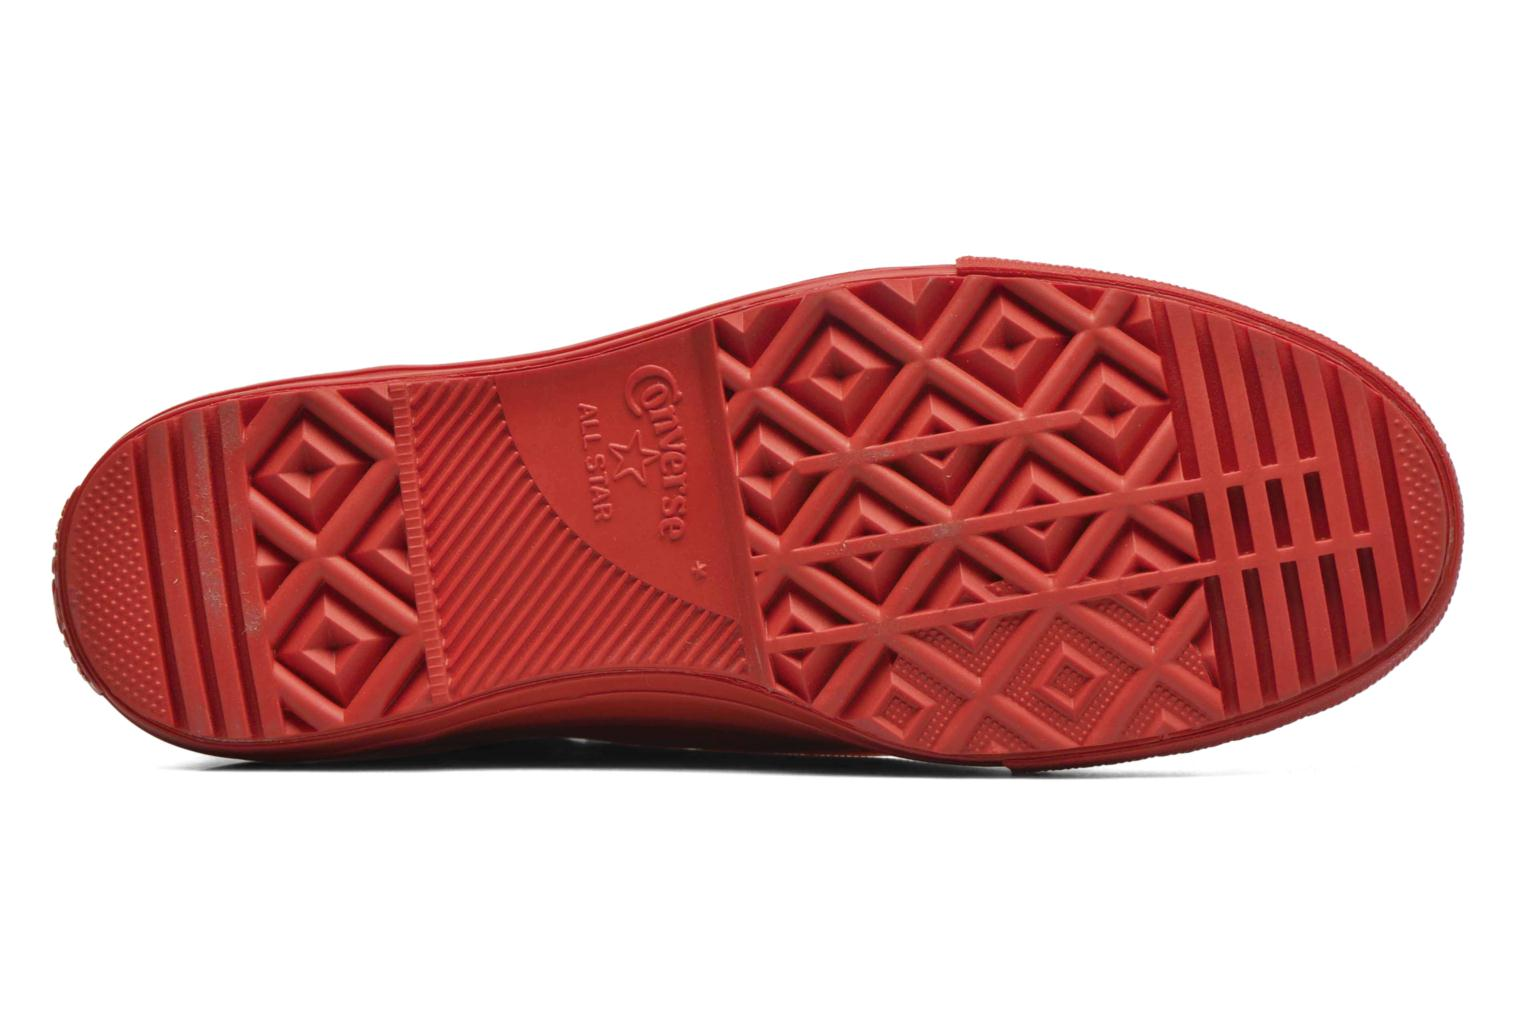 Signal Red Converse Ctas Chelsea Boot Rubber Hi (Rouge)